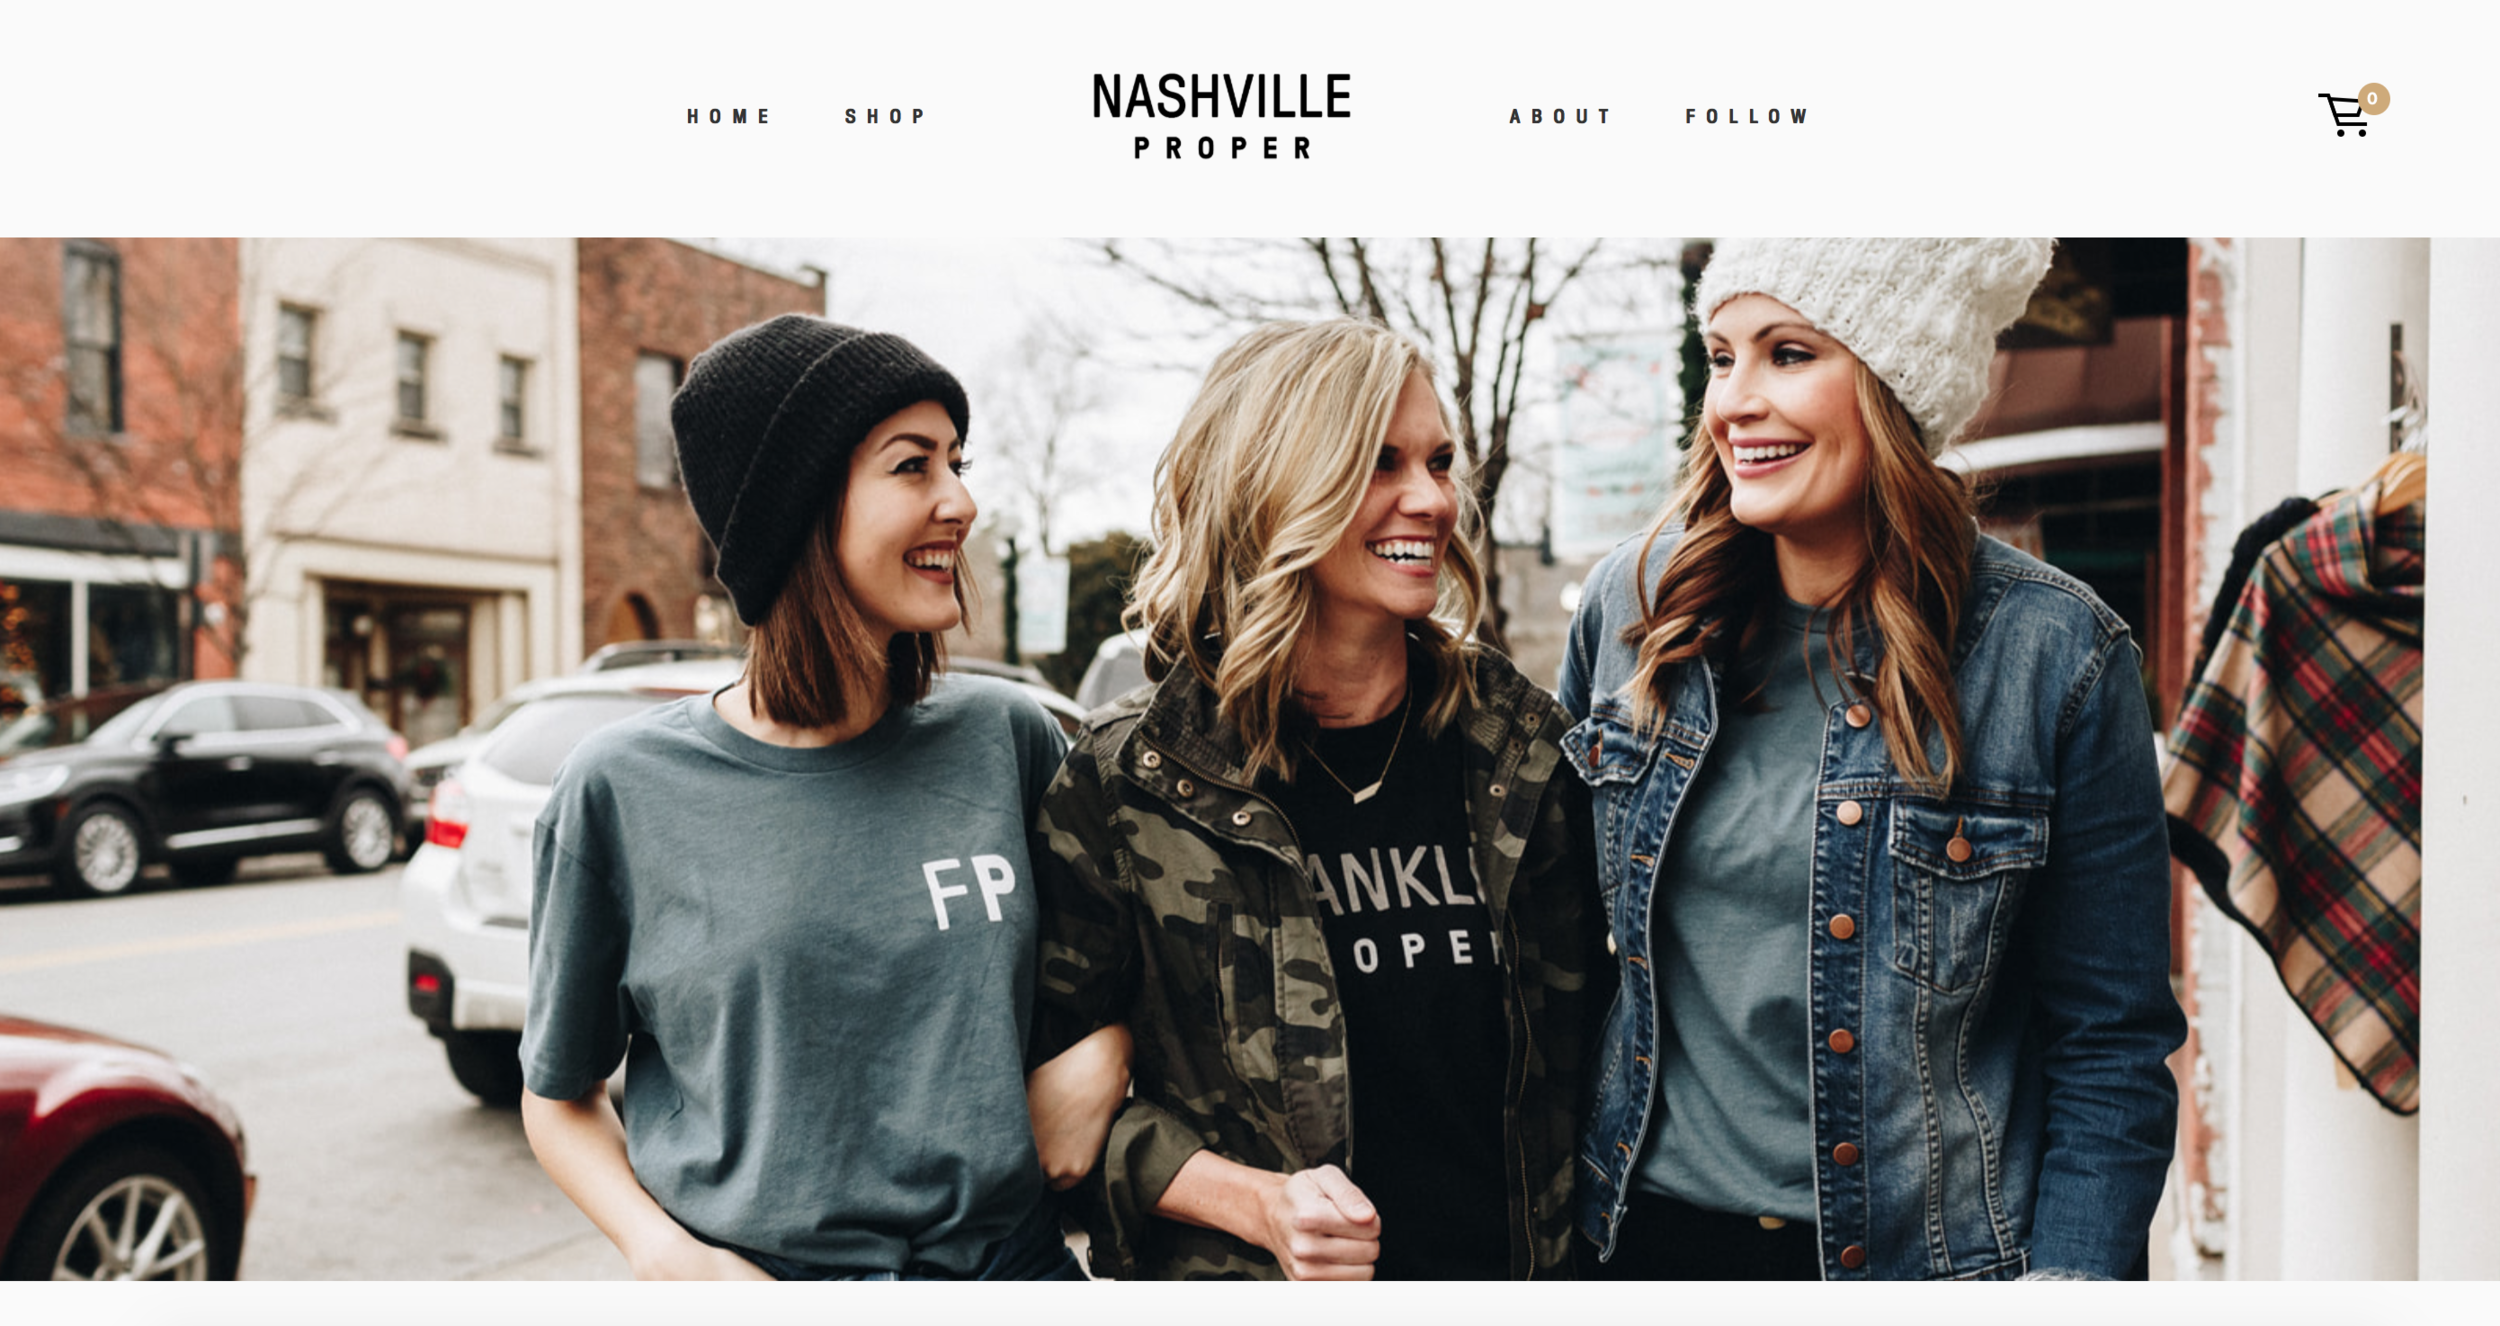 Nashville photographer